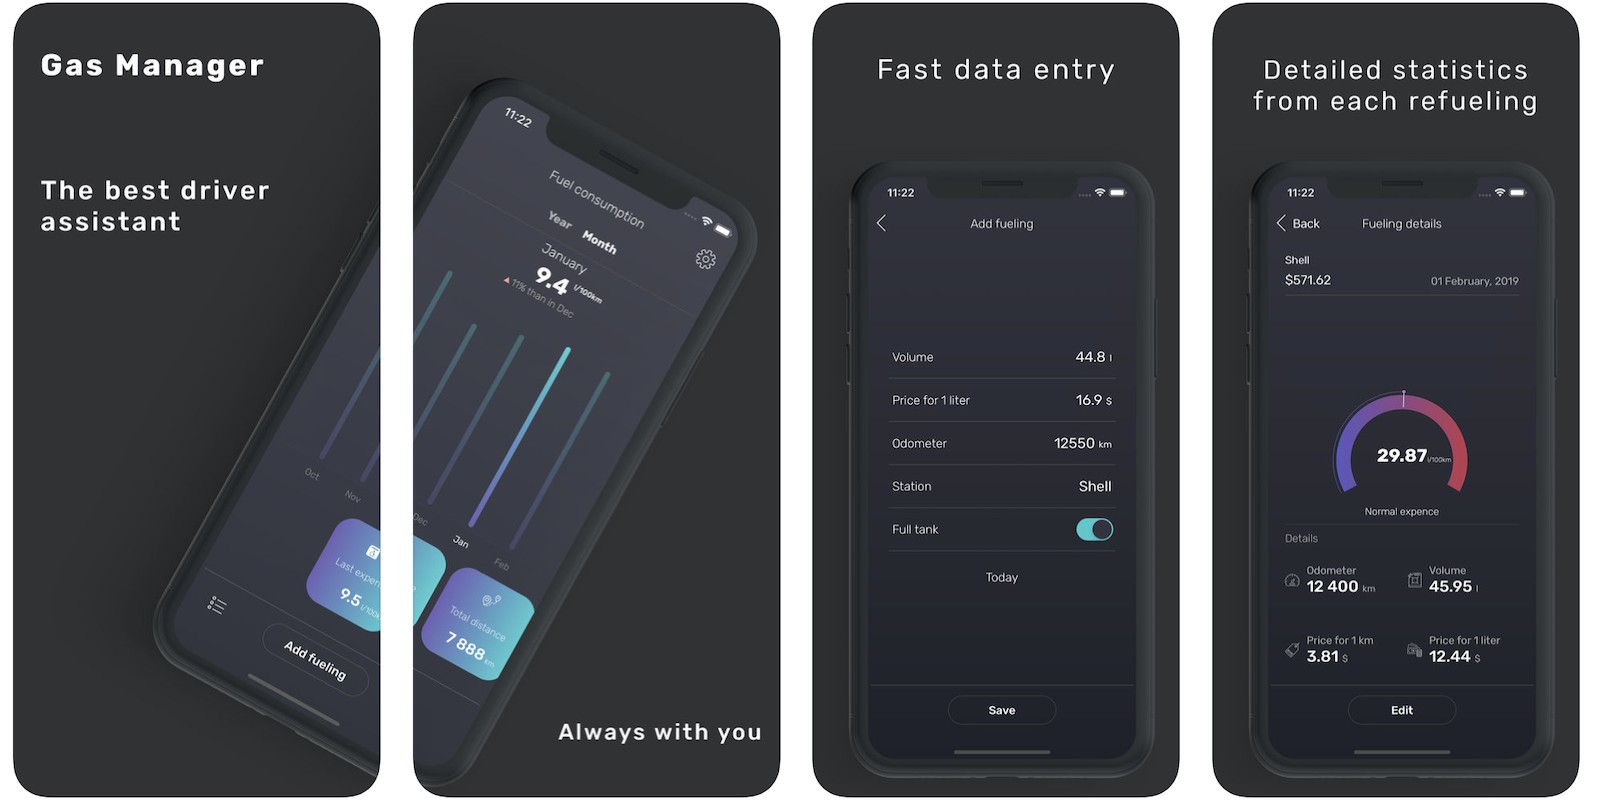 Gas Manager - iOS Source Code